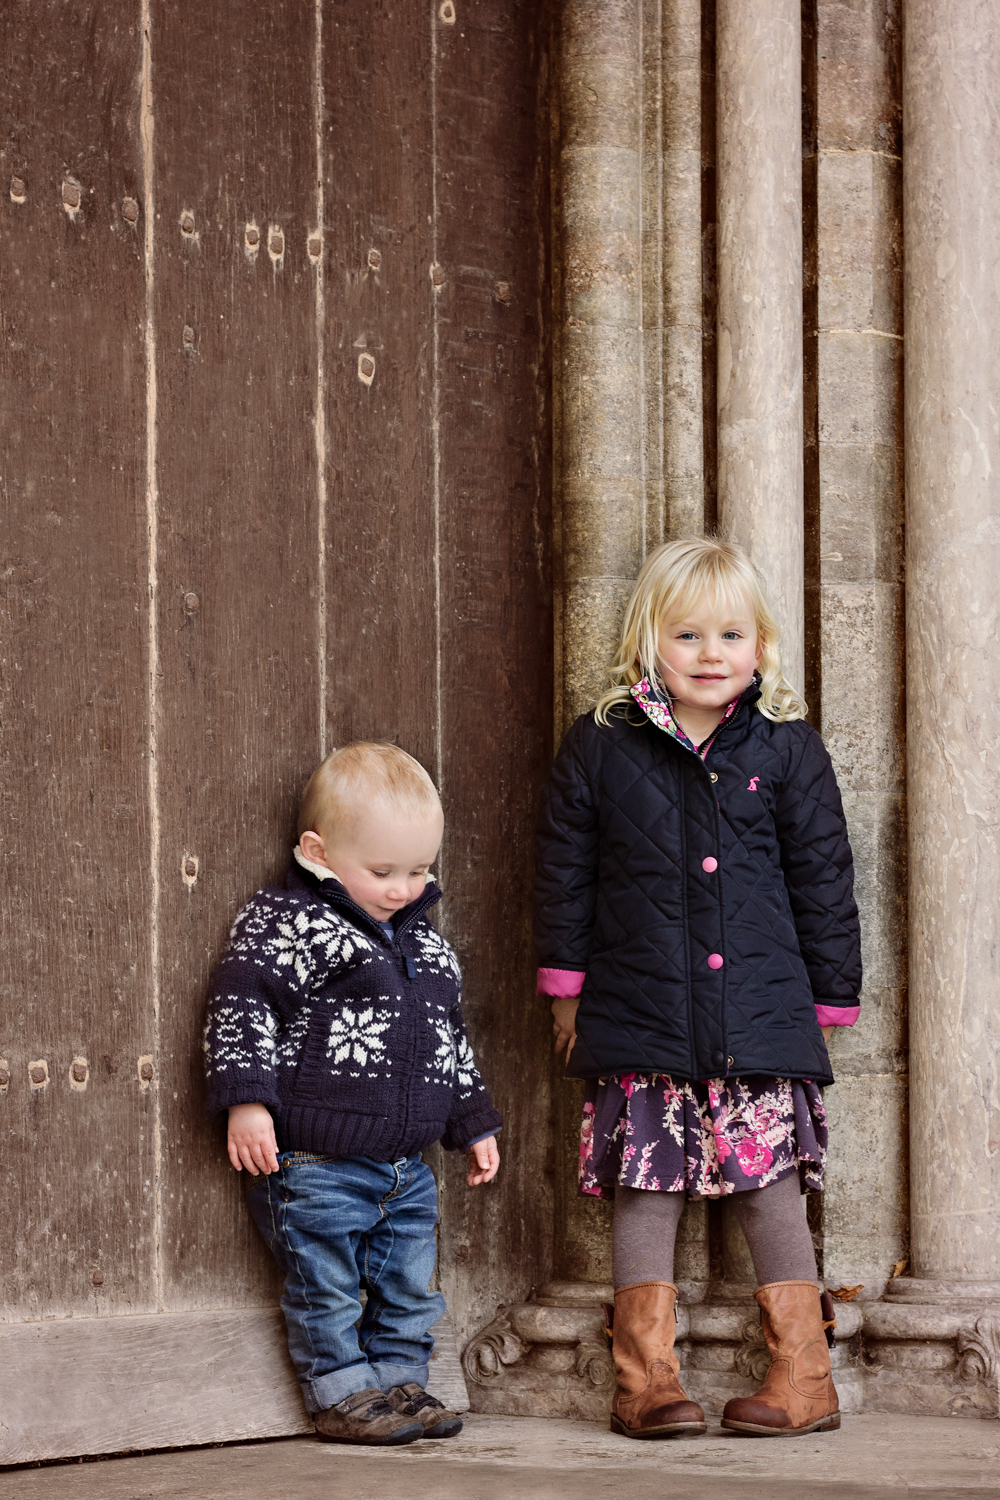 Little Brother and older sister stand against a big brown wooden door at Salisbury Cathedral - the boy looks down and the girl looks at the camera